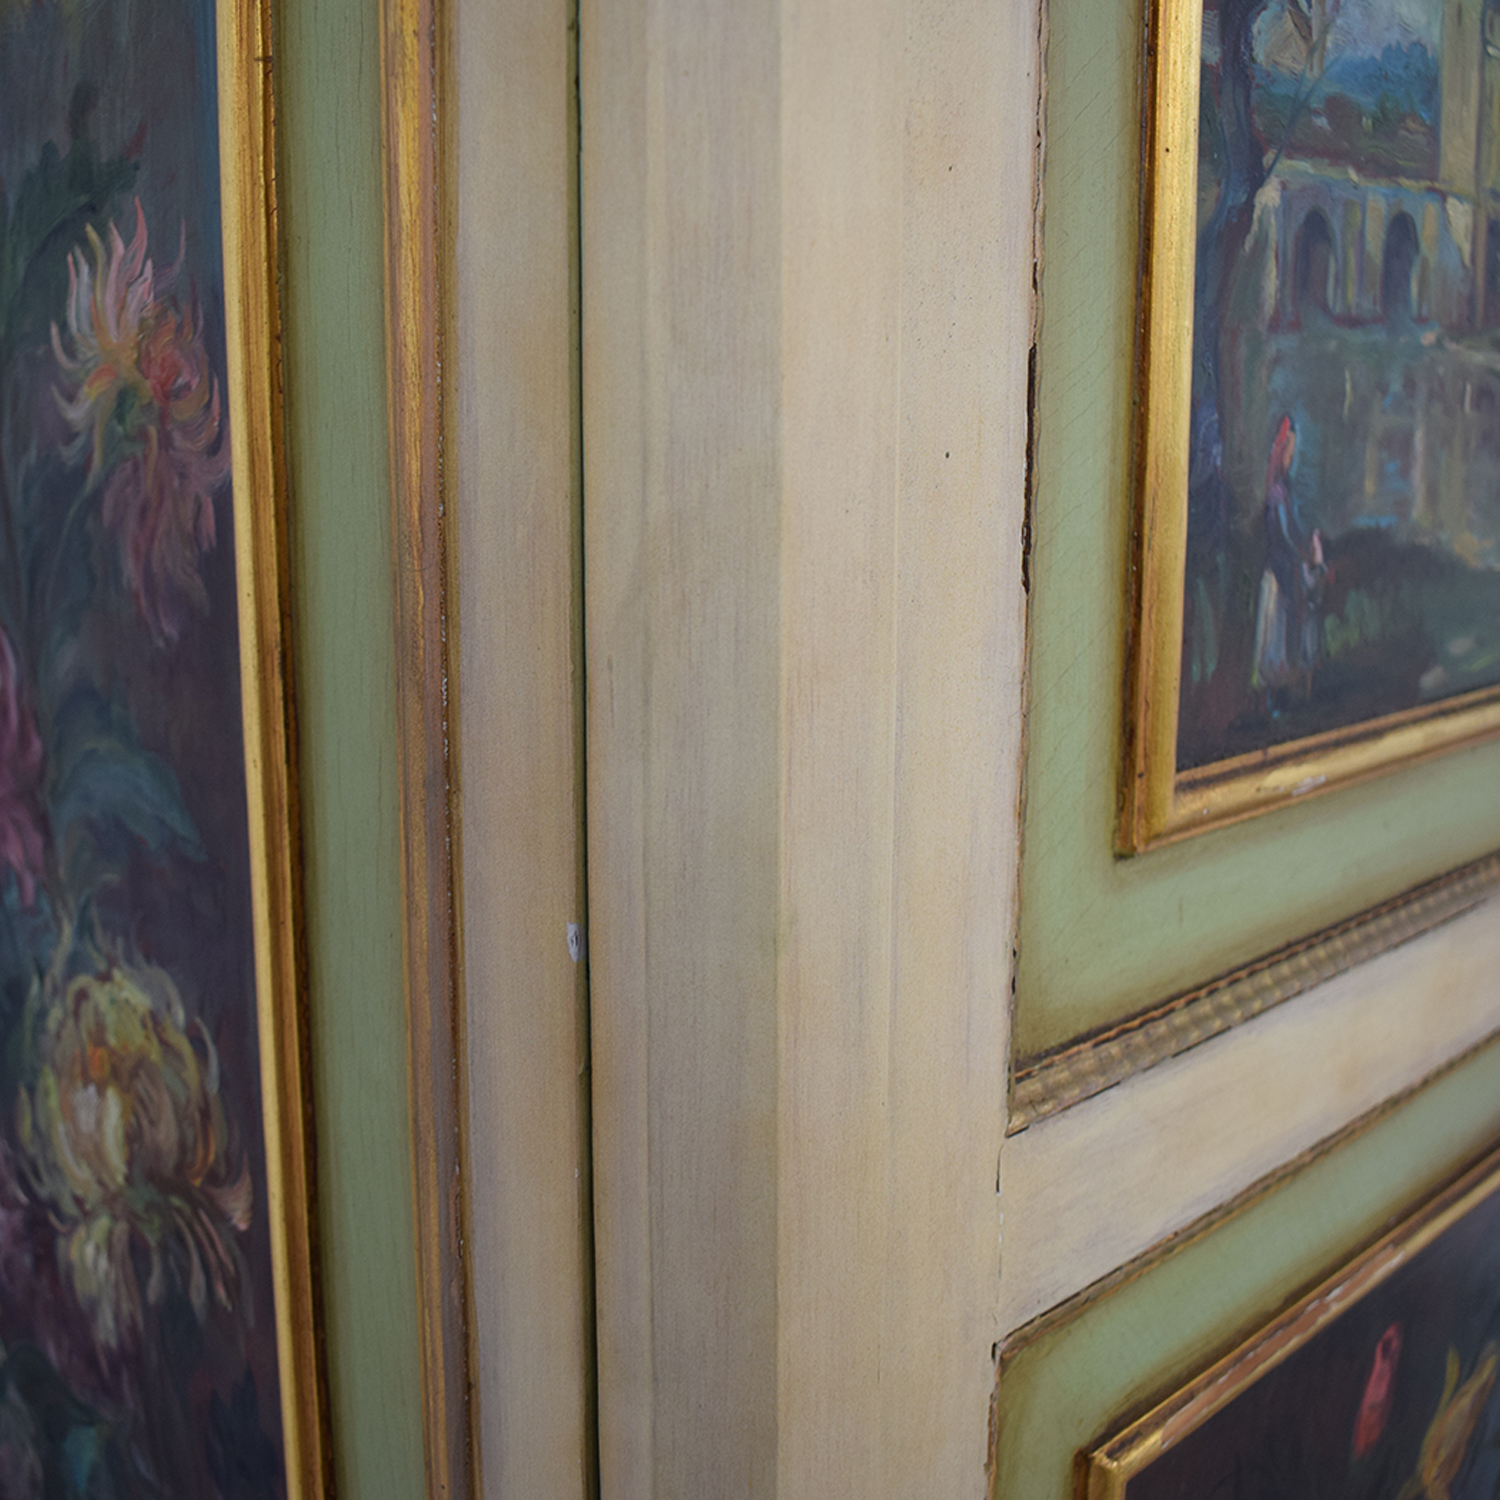 ABC Carpet & Home ABC Carpet & Home Floral Painted Armoire used